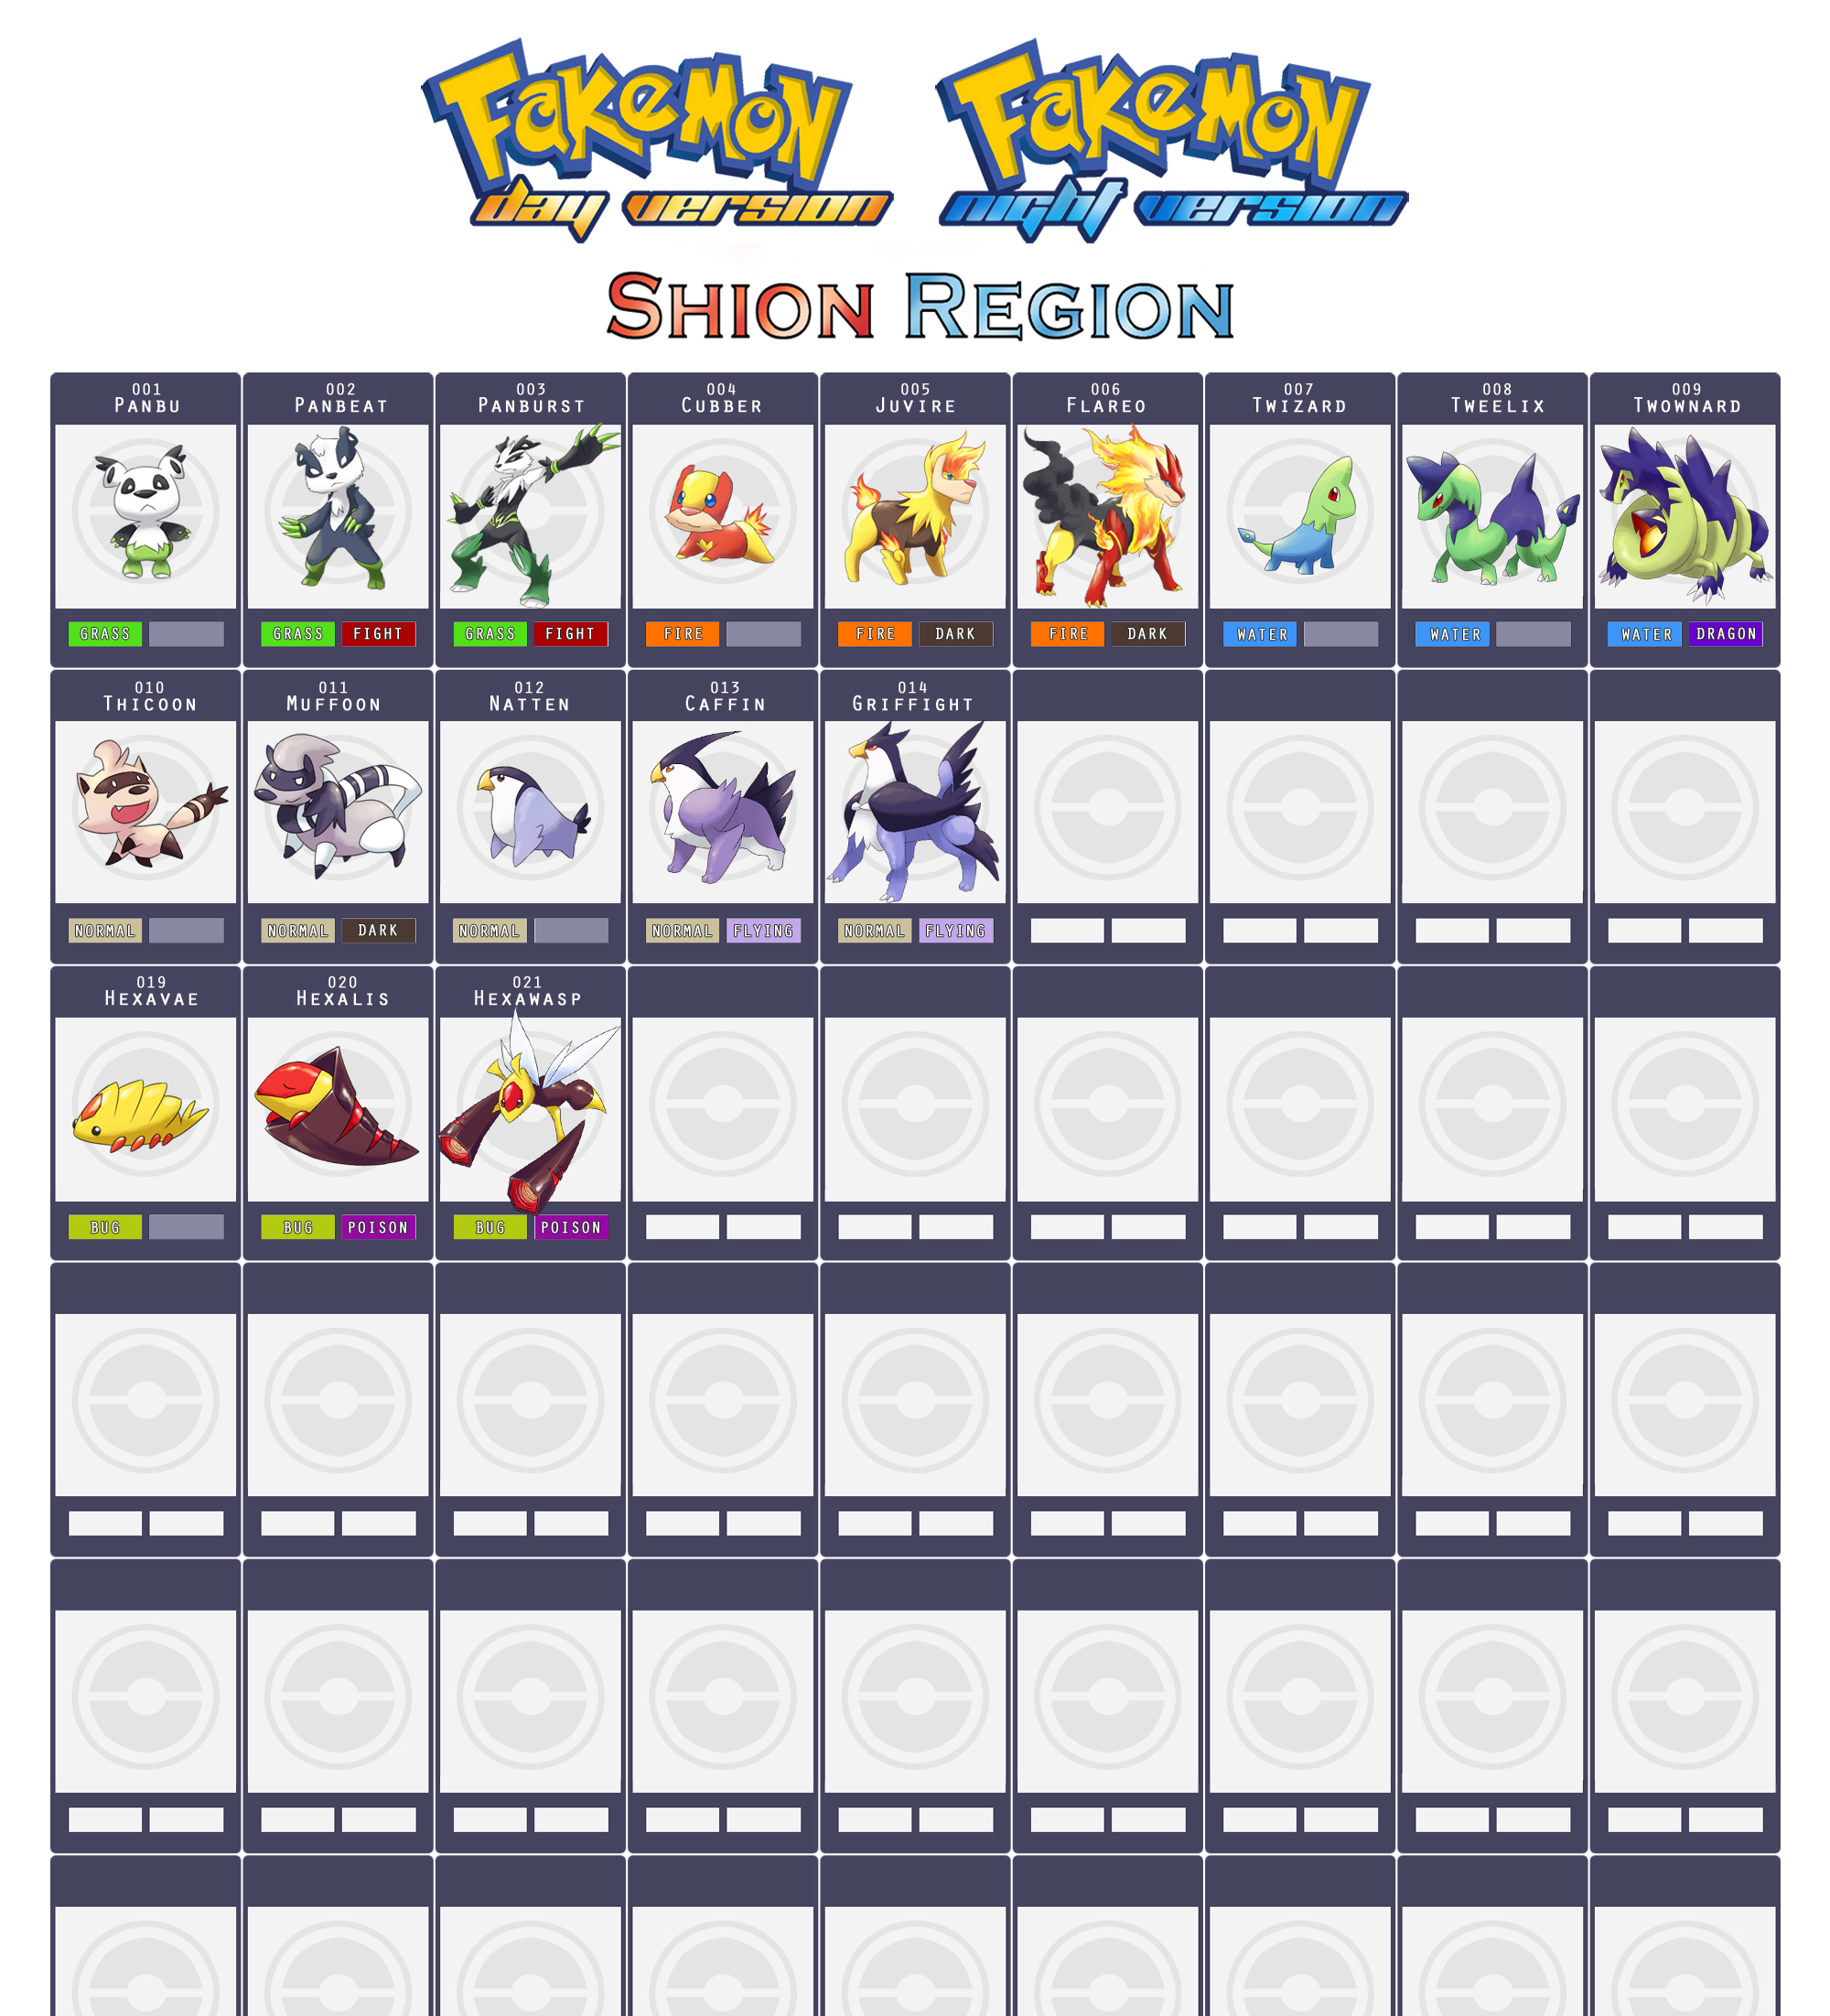 Shion Region Fakedex by cherubchan